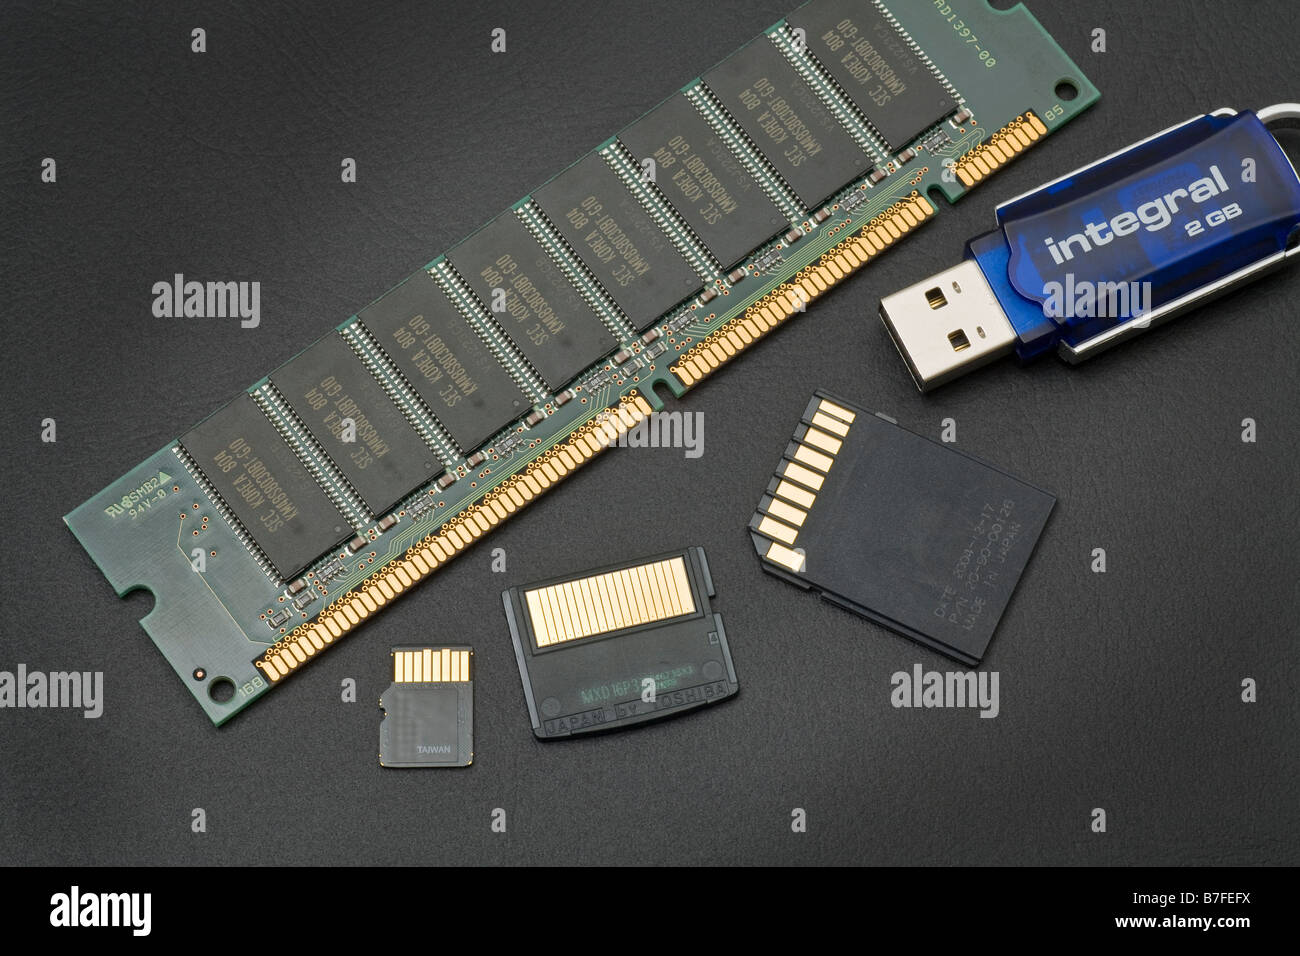 flash and conventional memory types compared from Korea Taiwan Japan - Stock Image